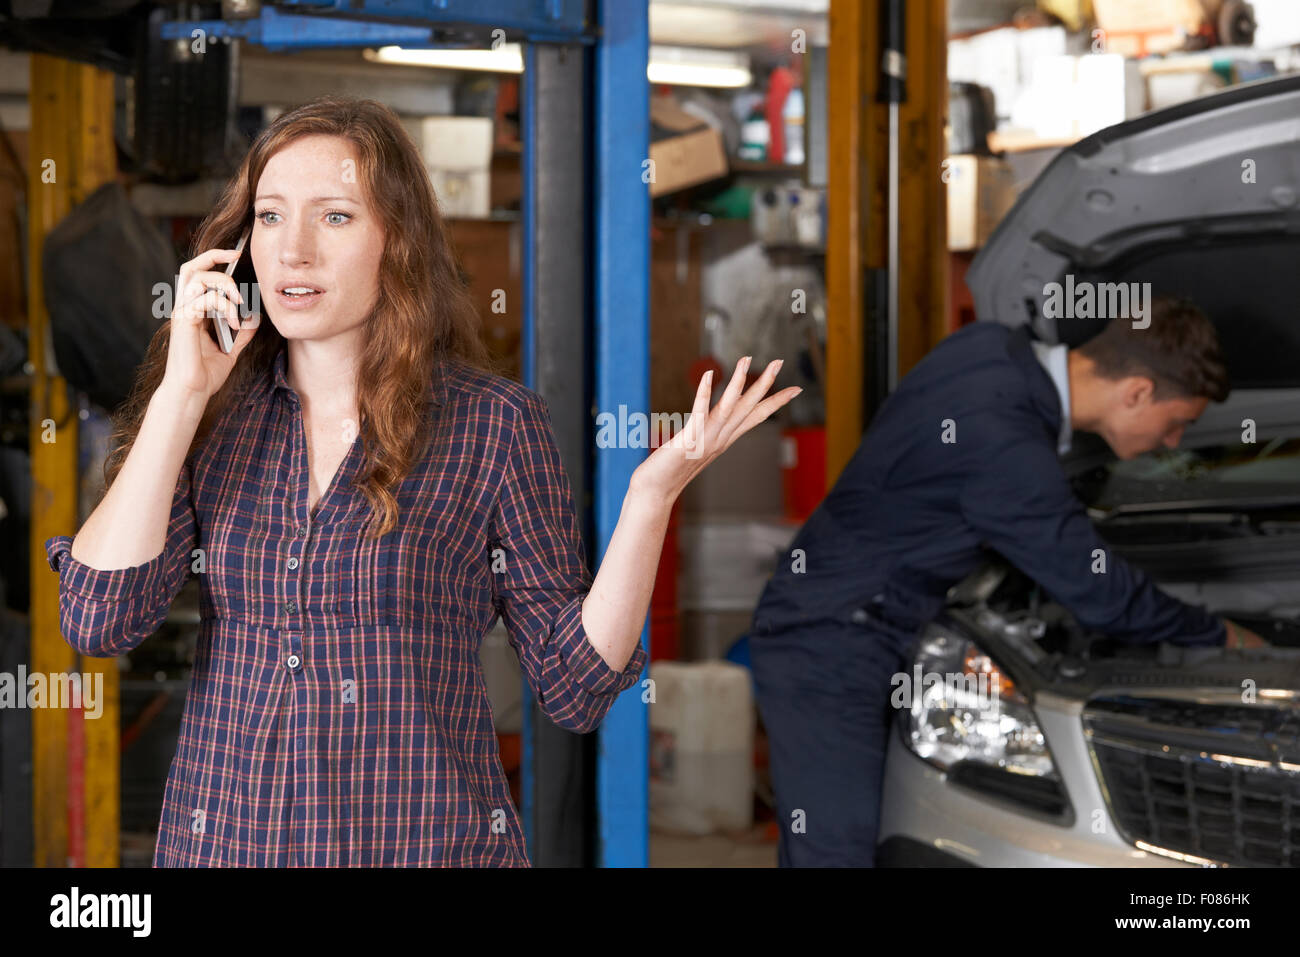 Frustrated Female Customer On Mobile Phone At Auto Repair Shop - Stock Image